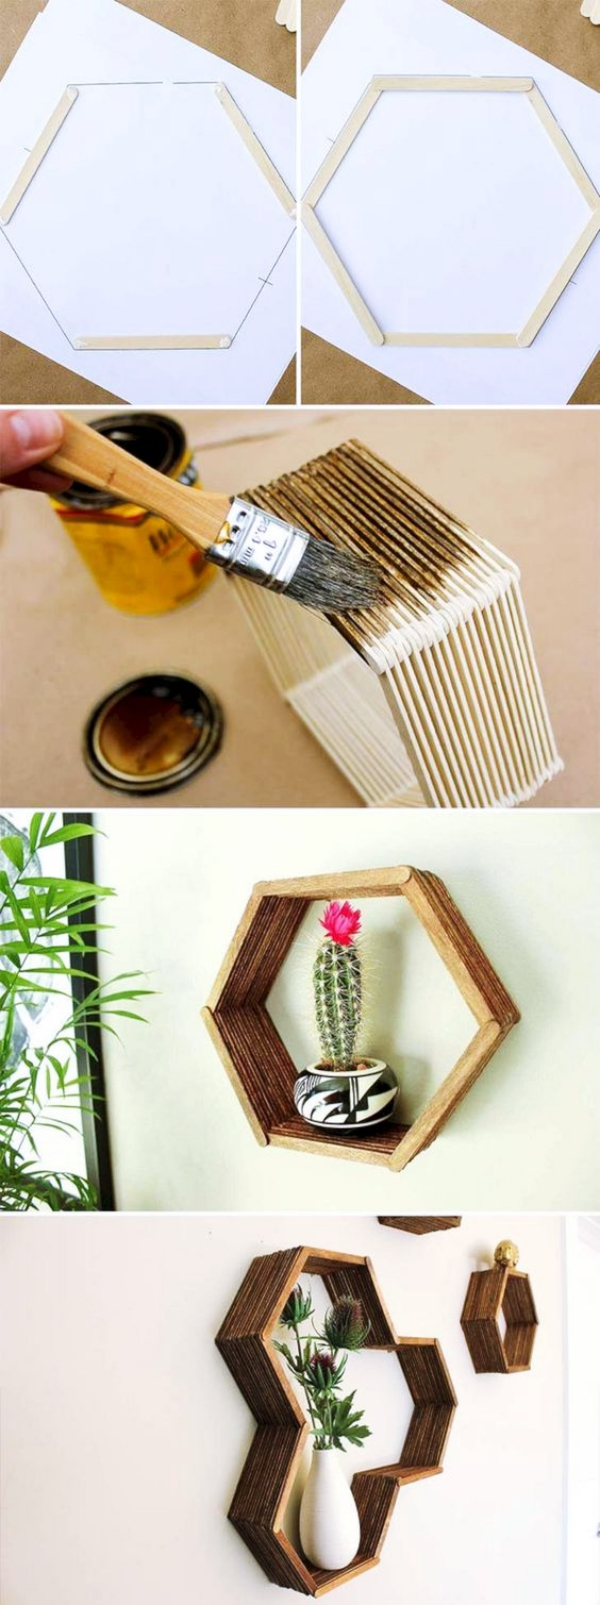 Best-DIY-Home-Decoration-Ideas